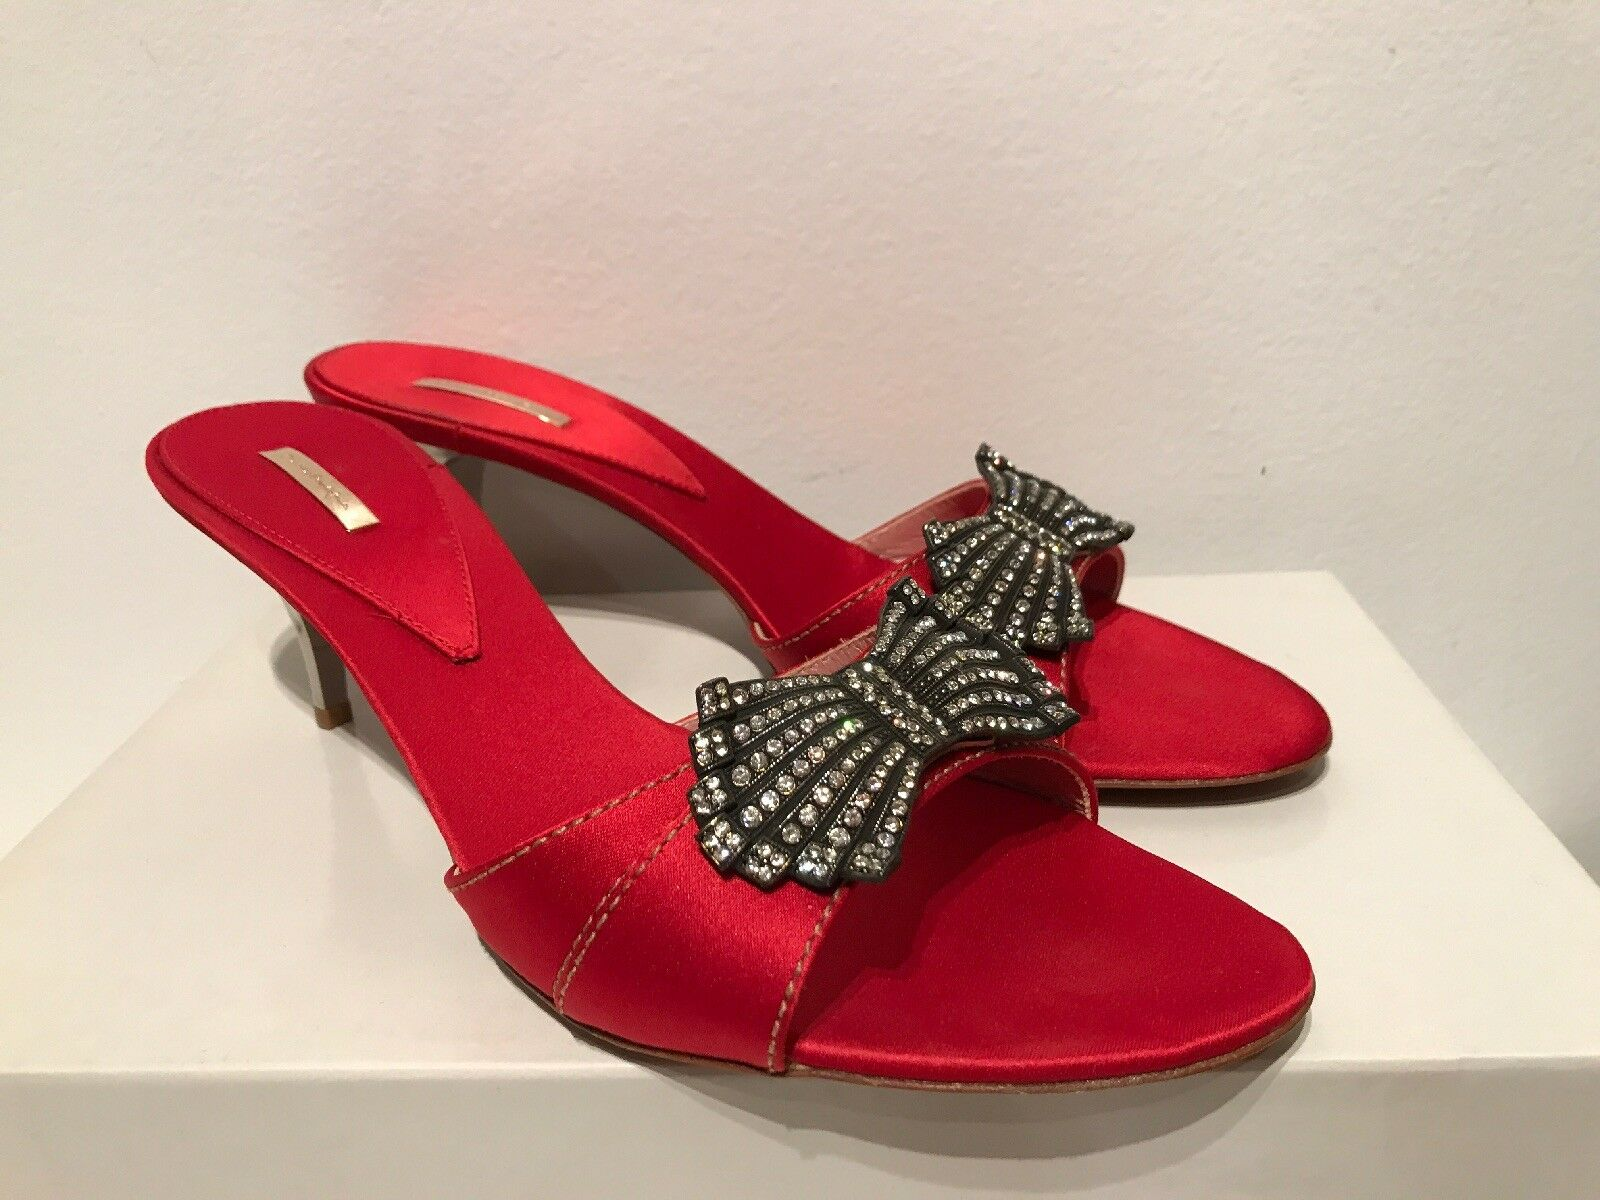 MARIO BOLOGNA SIAM femmes rouge SILK CRYSTAL BOW MULES SLIDES HEEL chaussures 40   9